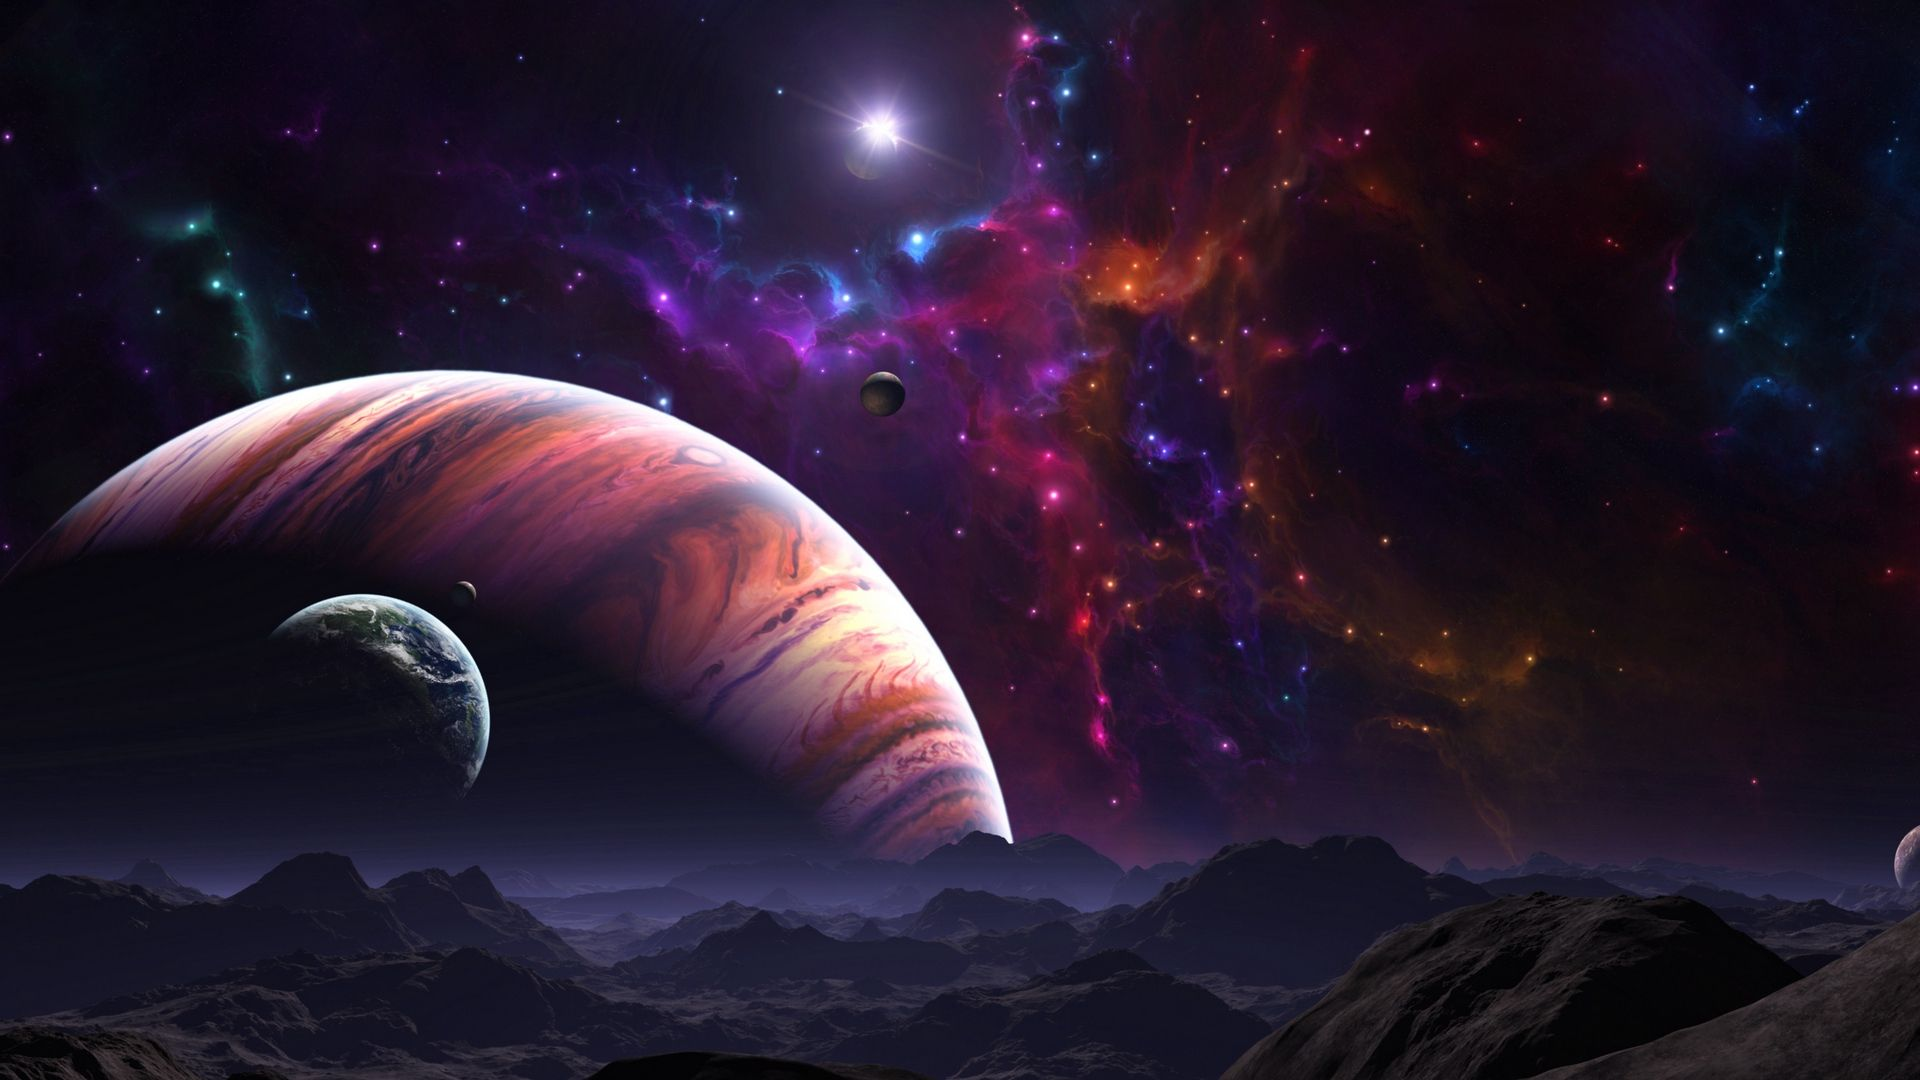 Space Themed download free wallpapers for pc in hd